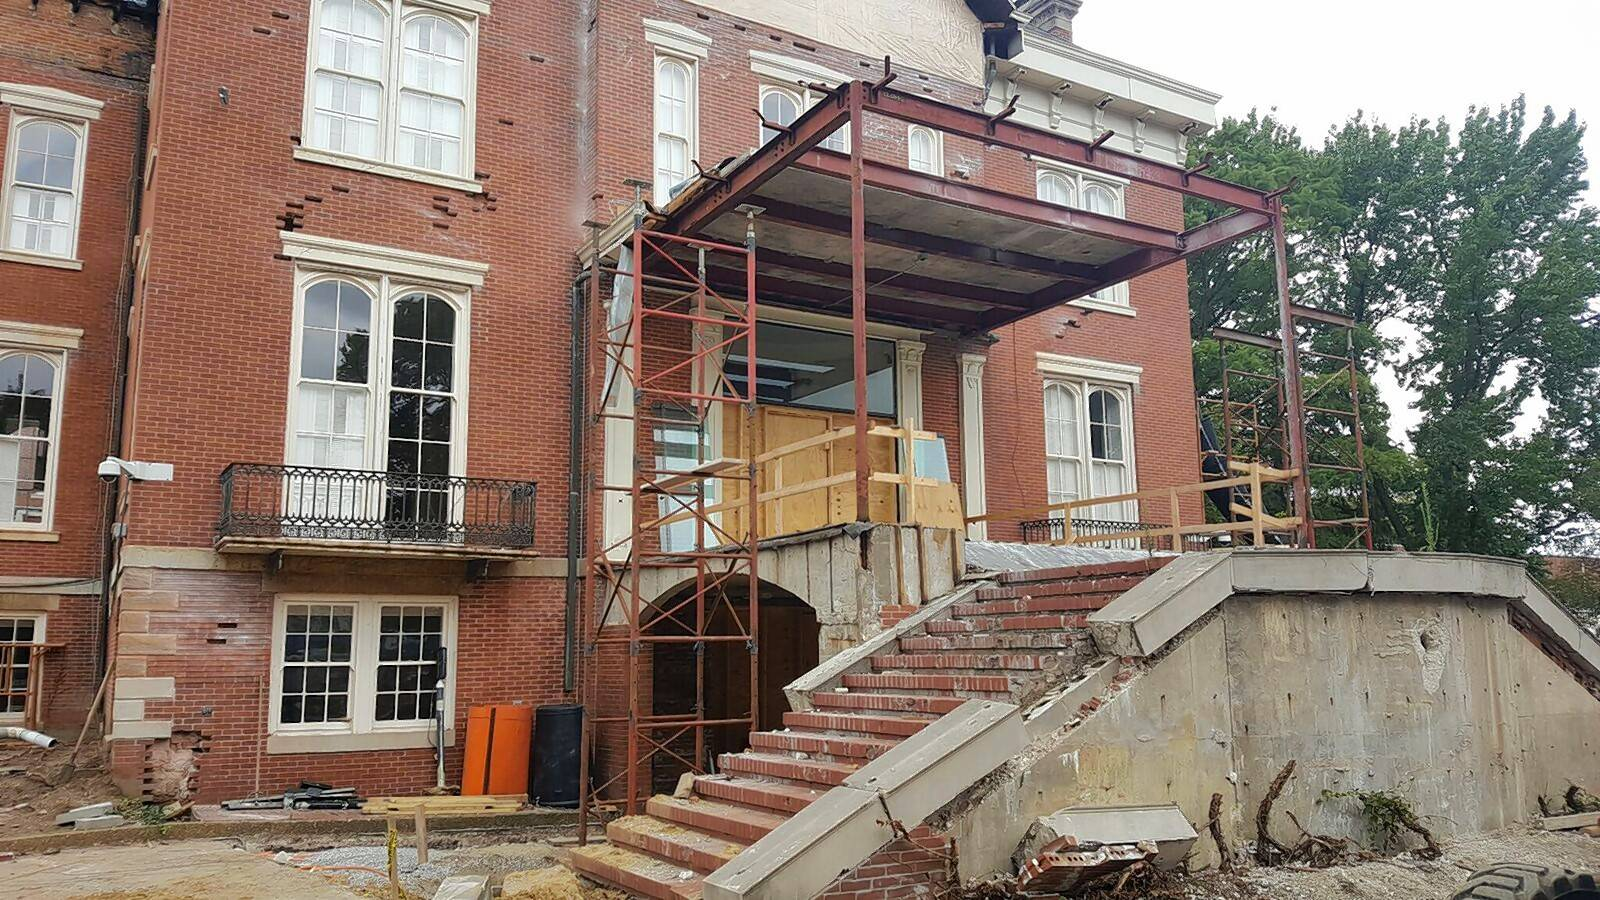 The Governor's Mansion during exterior repairs to the brickwork and foundation walls.